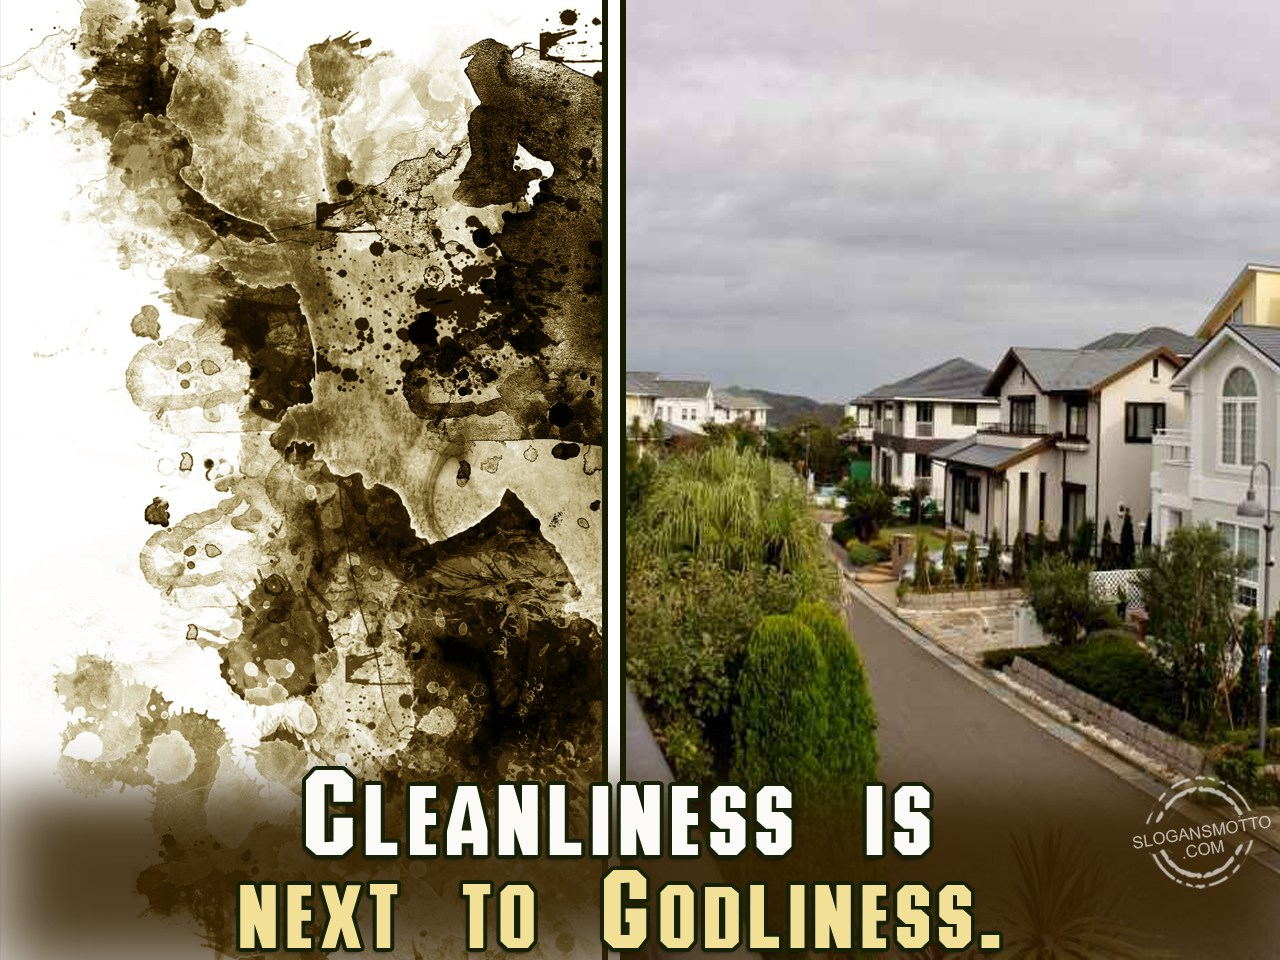 write an essay on cleanliness is next to godliness Cleanliness is next to godliness originated in the medieval era when a man was going to get knighted, they made him bath and wear a white robe, in the bible it gives specific instructions to bath.